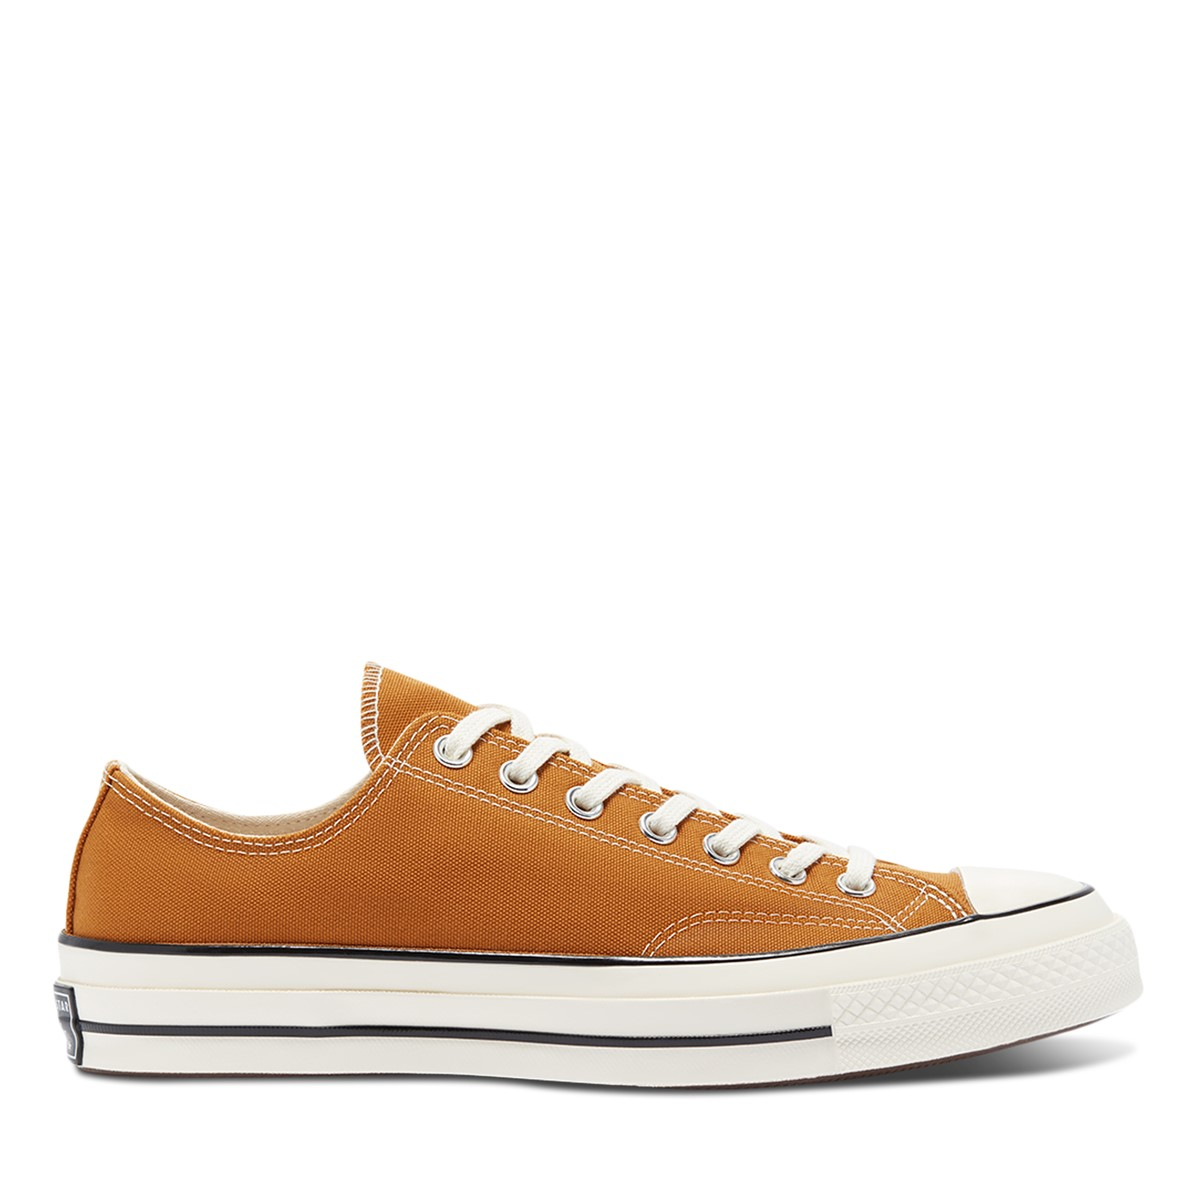 Converse Chuck 70 Ox Sneakers in Orange